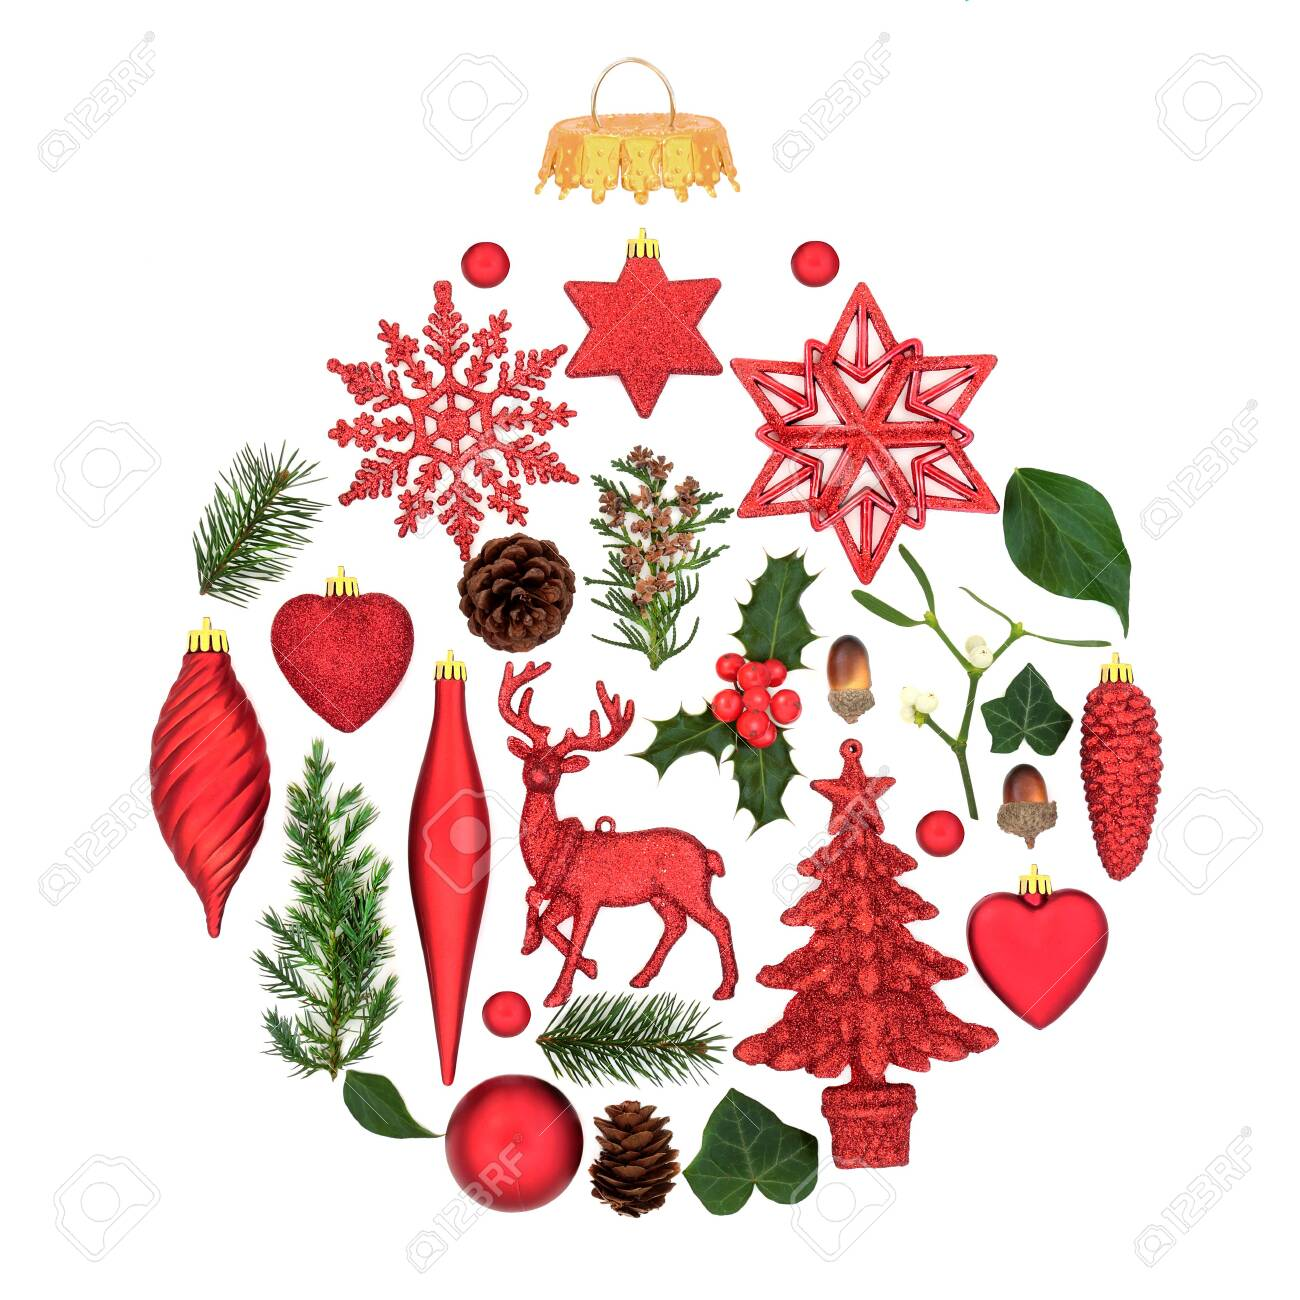 Christmas Tree Decorations With Winter Flora Forming An Abstract Stock Photo Picture And Royalty Free Image Image 134269248